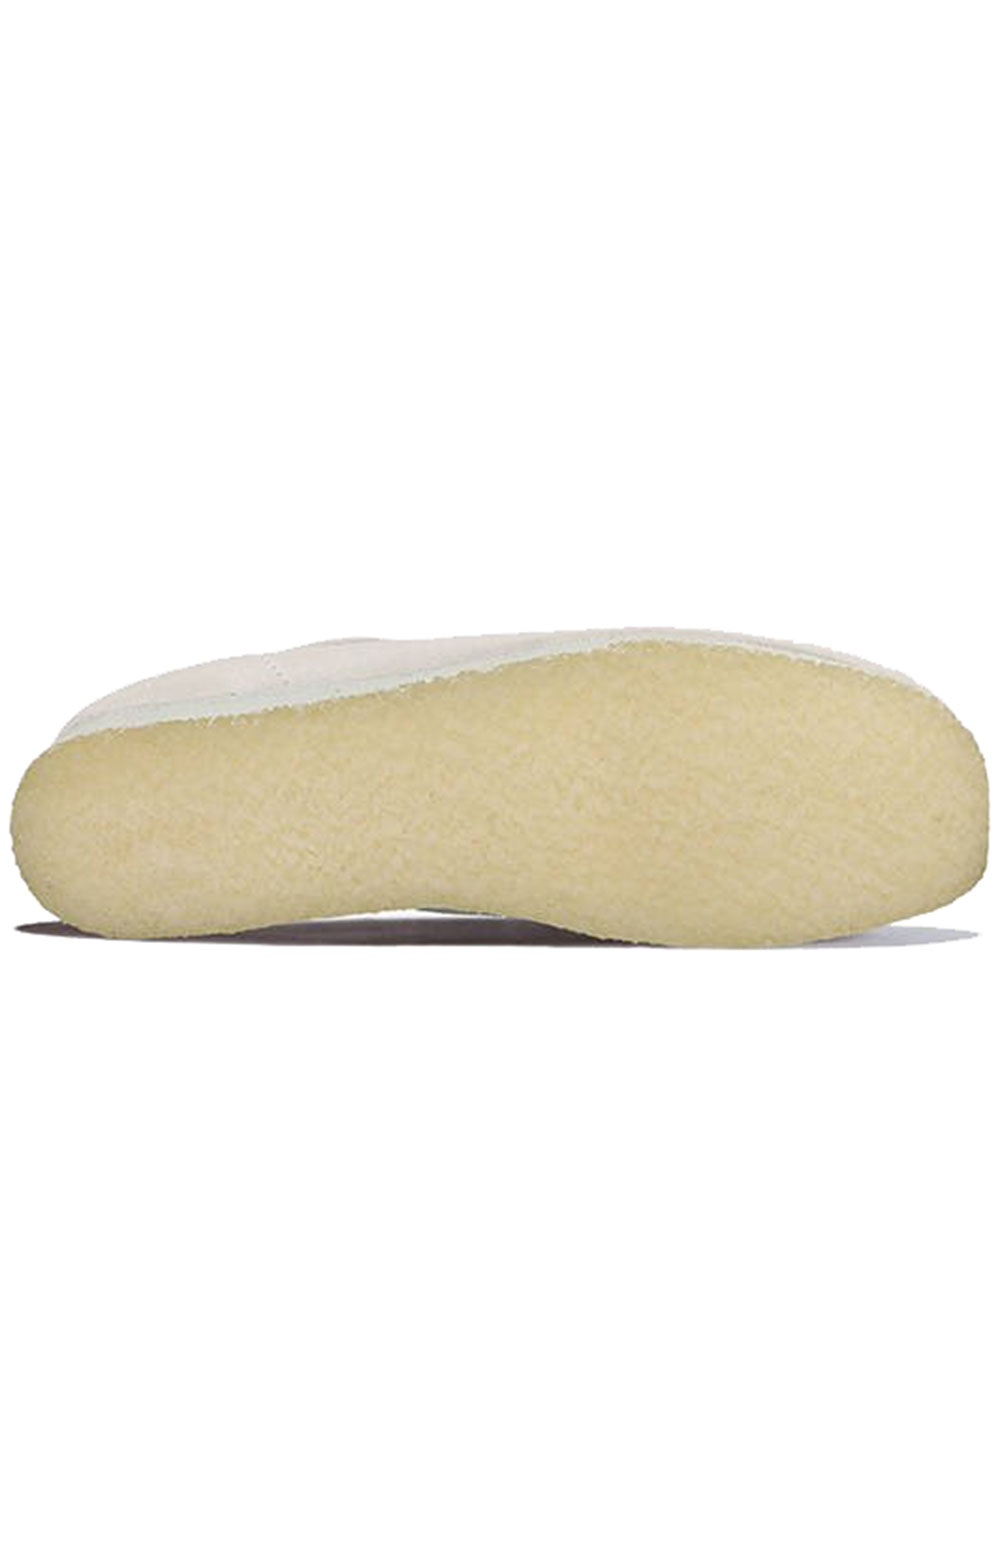 (26158421) Wallabee Shoes - White Suede 2